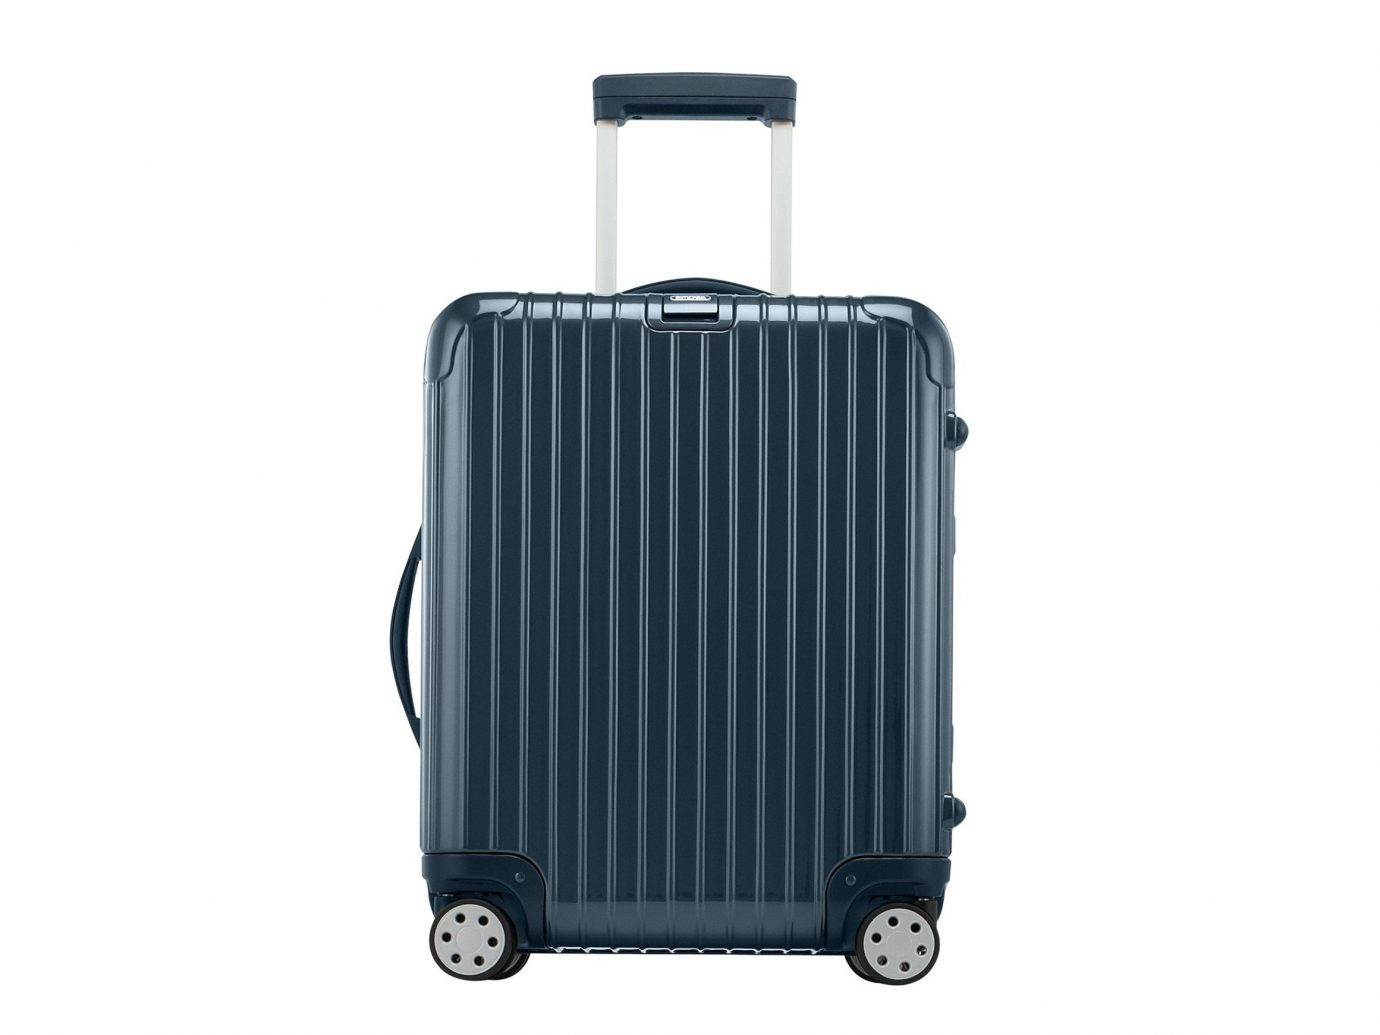 Style + Design Travel Shop Travel Tech Travel Tips electric blue suitcase product cobalt blue hand luggage product design luggage & bags bag baggage pattern brand